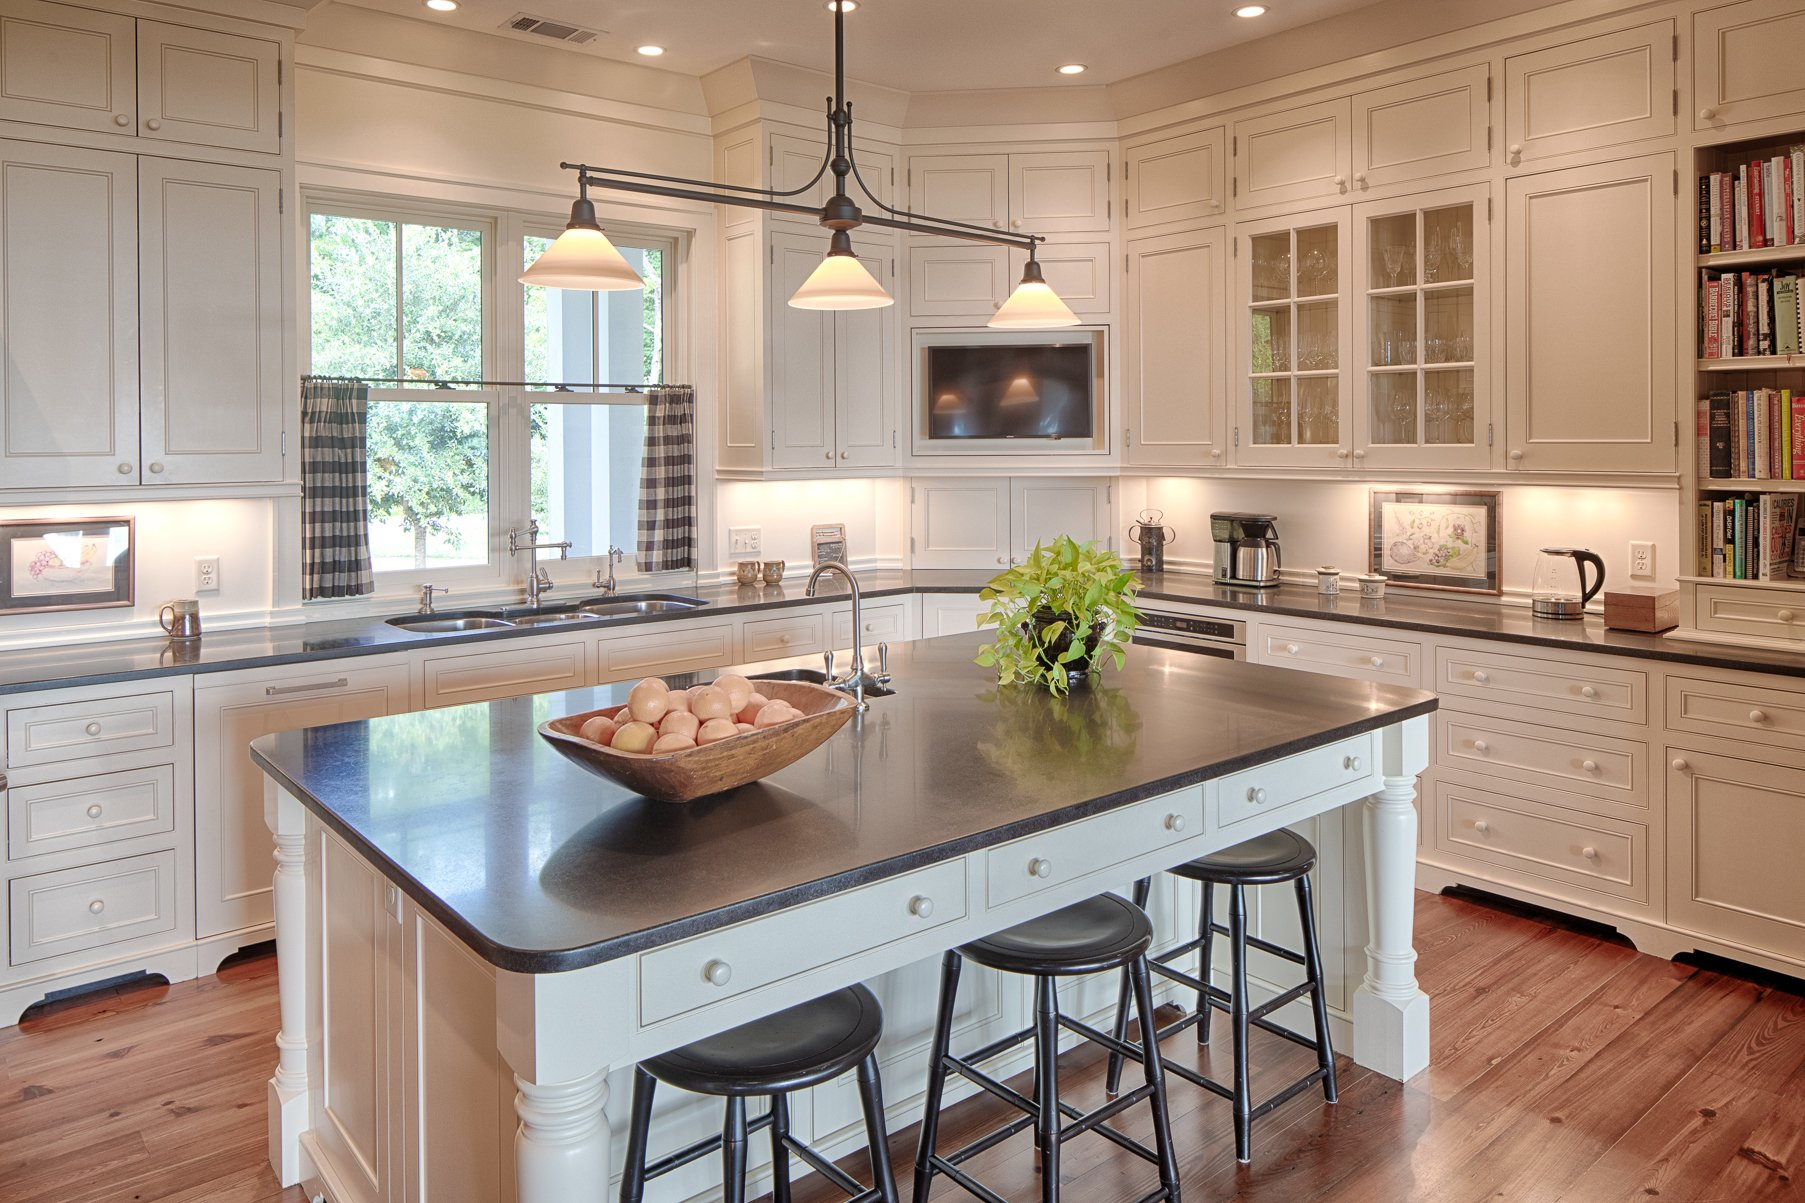 Farmhouse kitchen with white cabinets, trim, island and backsplash. Real wood floors and dark granite countertops.